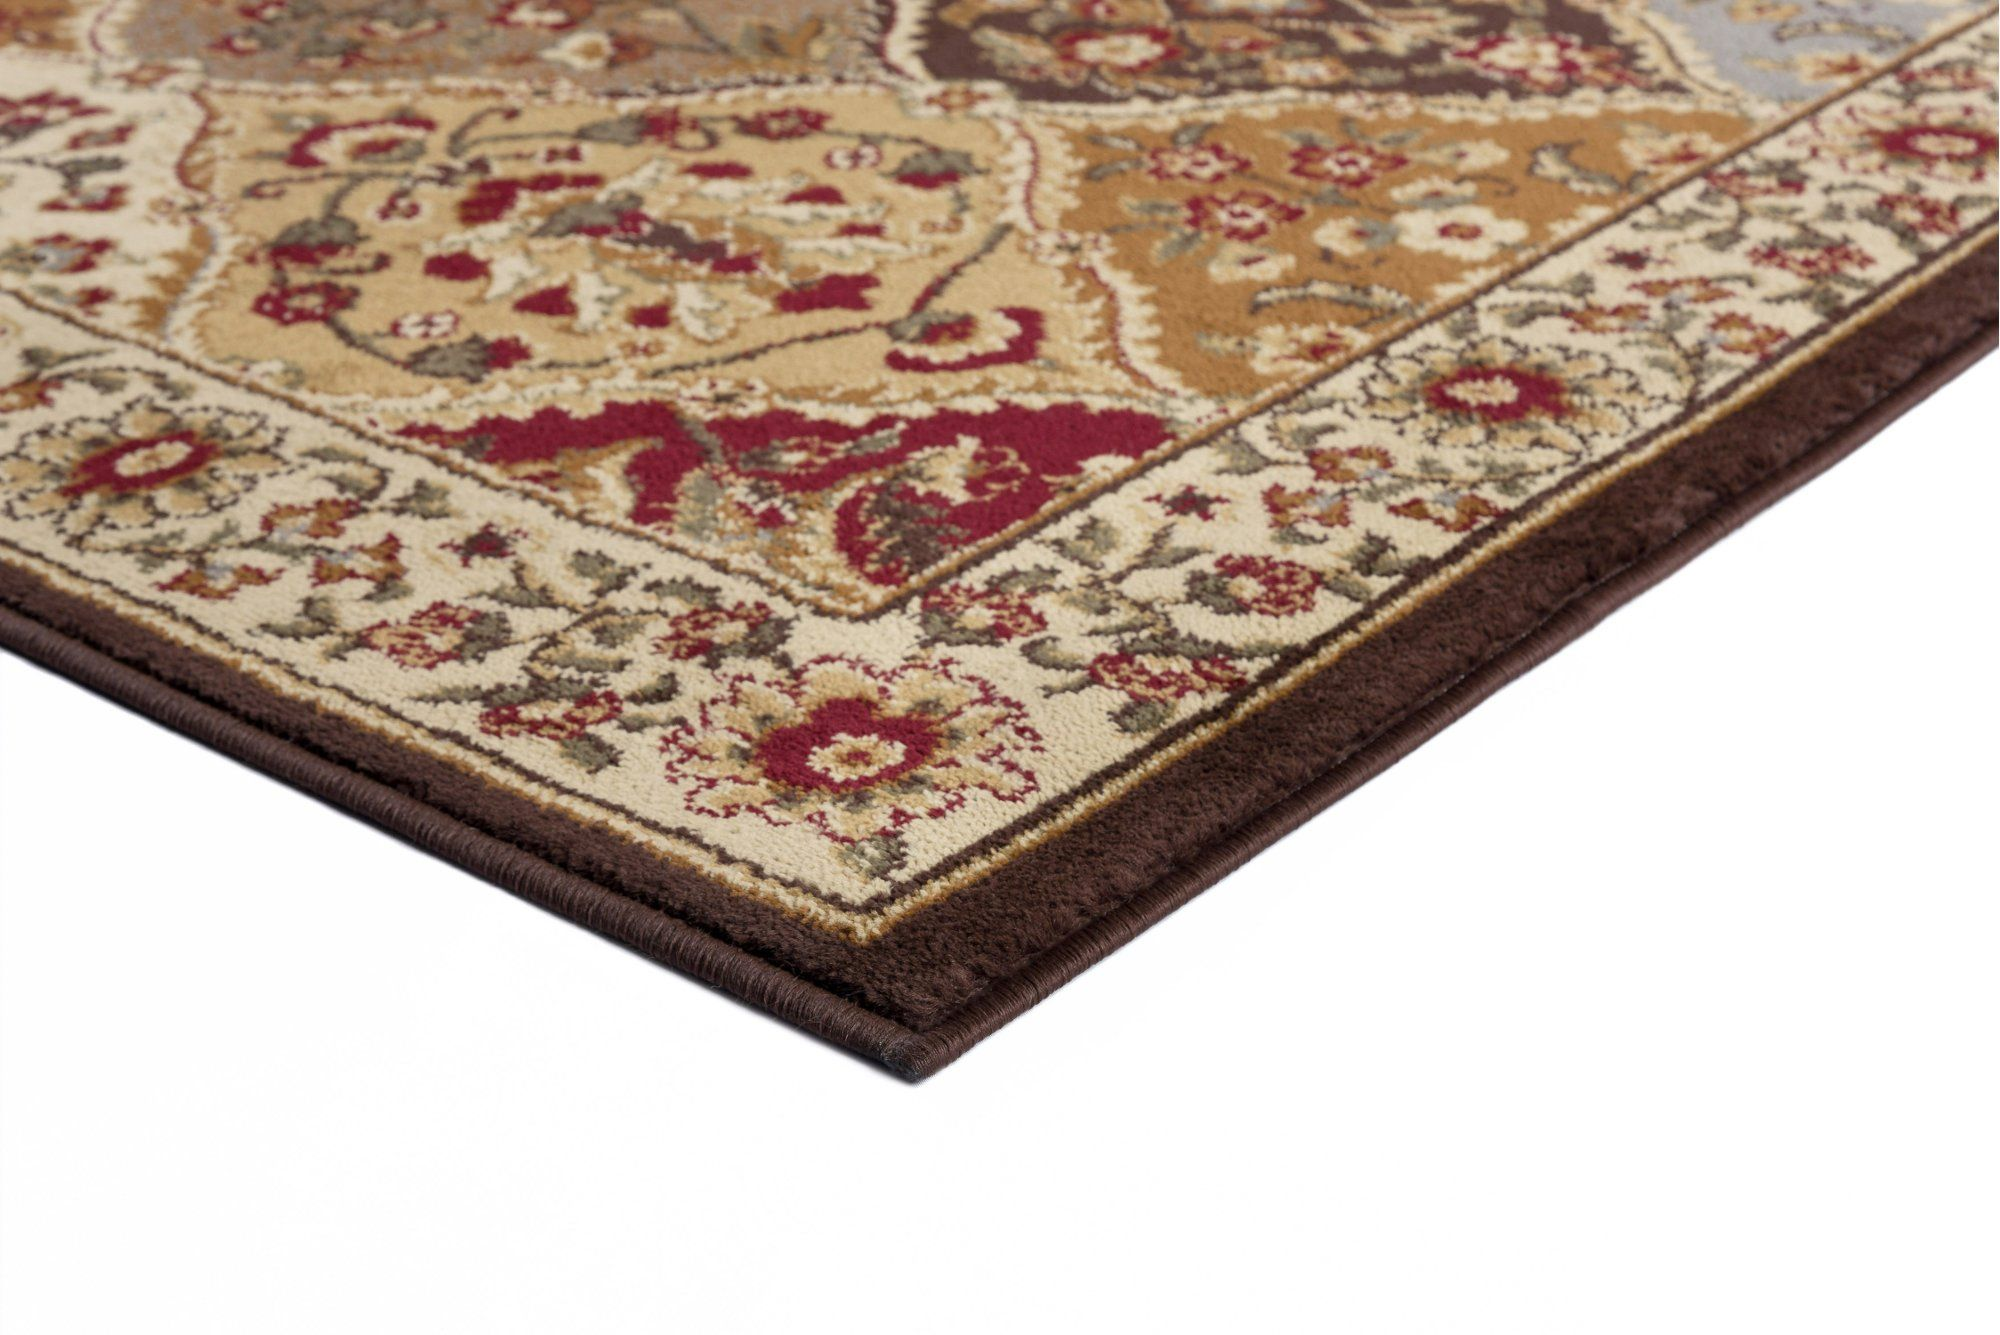 5 X 7 Medium Tan And Red Area Rug Elegance Area Rugs Rugs